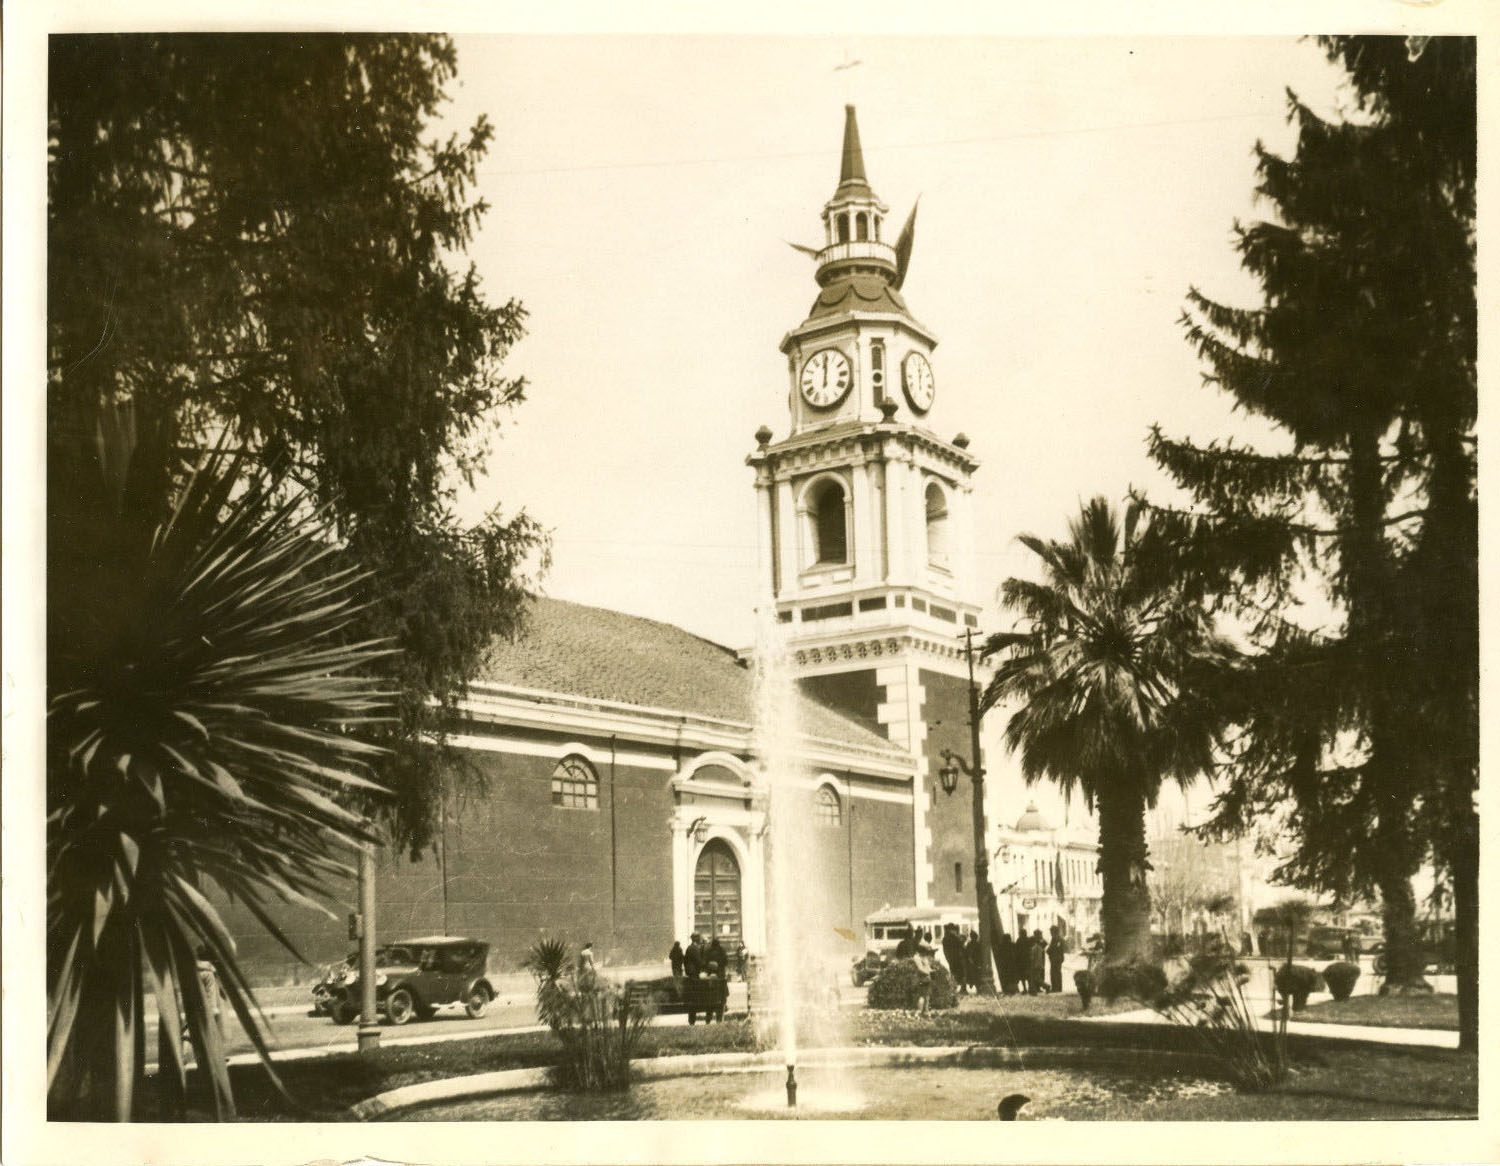 Enterreno - Fotos históricas de chile - fotos antiguas de Chile - Iglesia San Francisco de Santiago en 1928